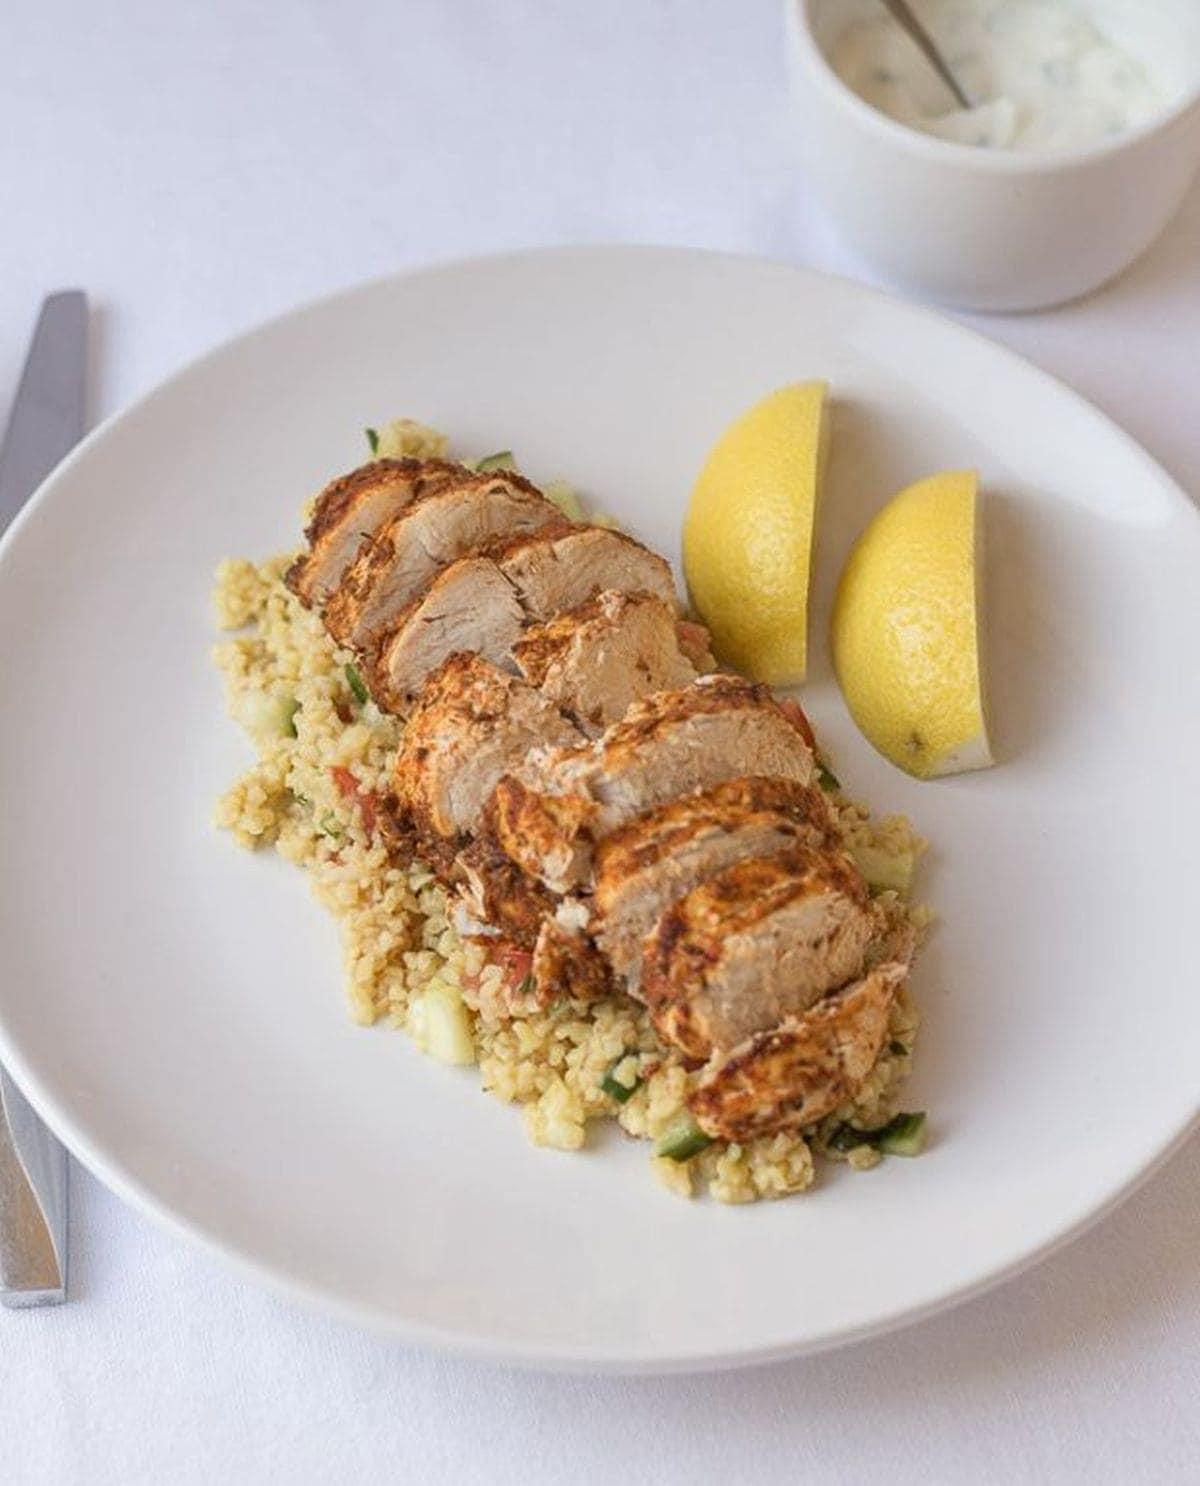 Sliced cajun spiced oven baked chicken on bulghur wheat with two lemon quarters on the side of the plate.